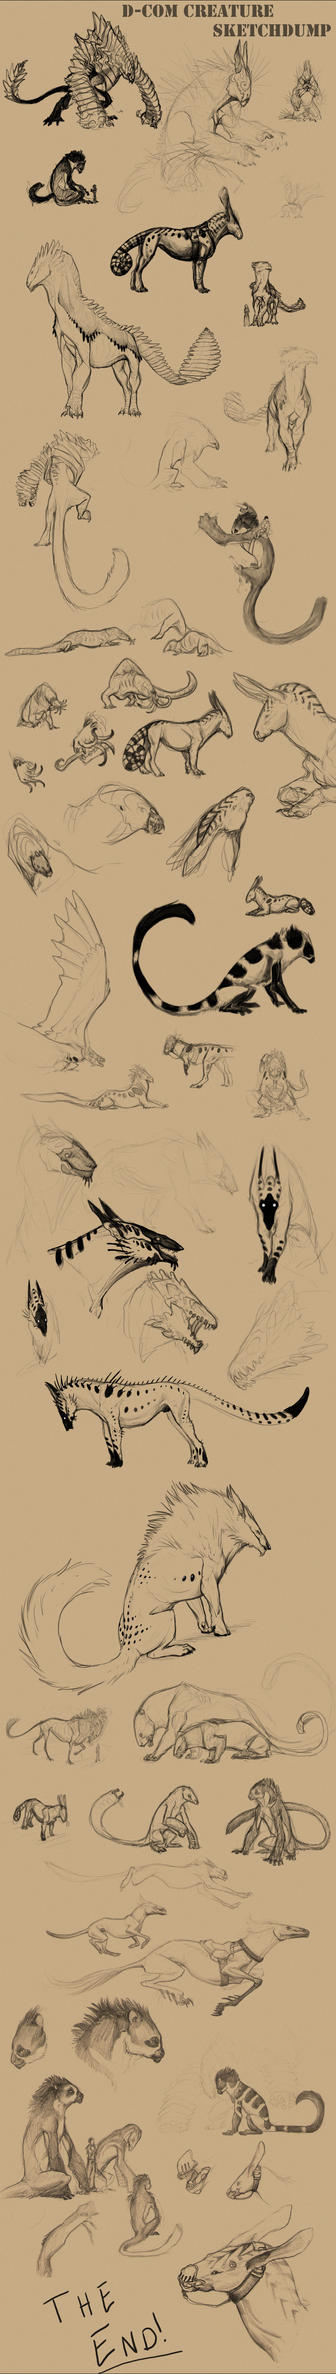 D-COM Creature Sketchdump by 86Caskin